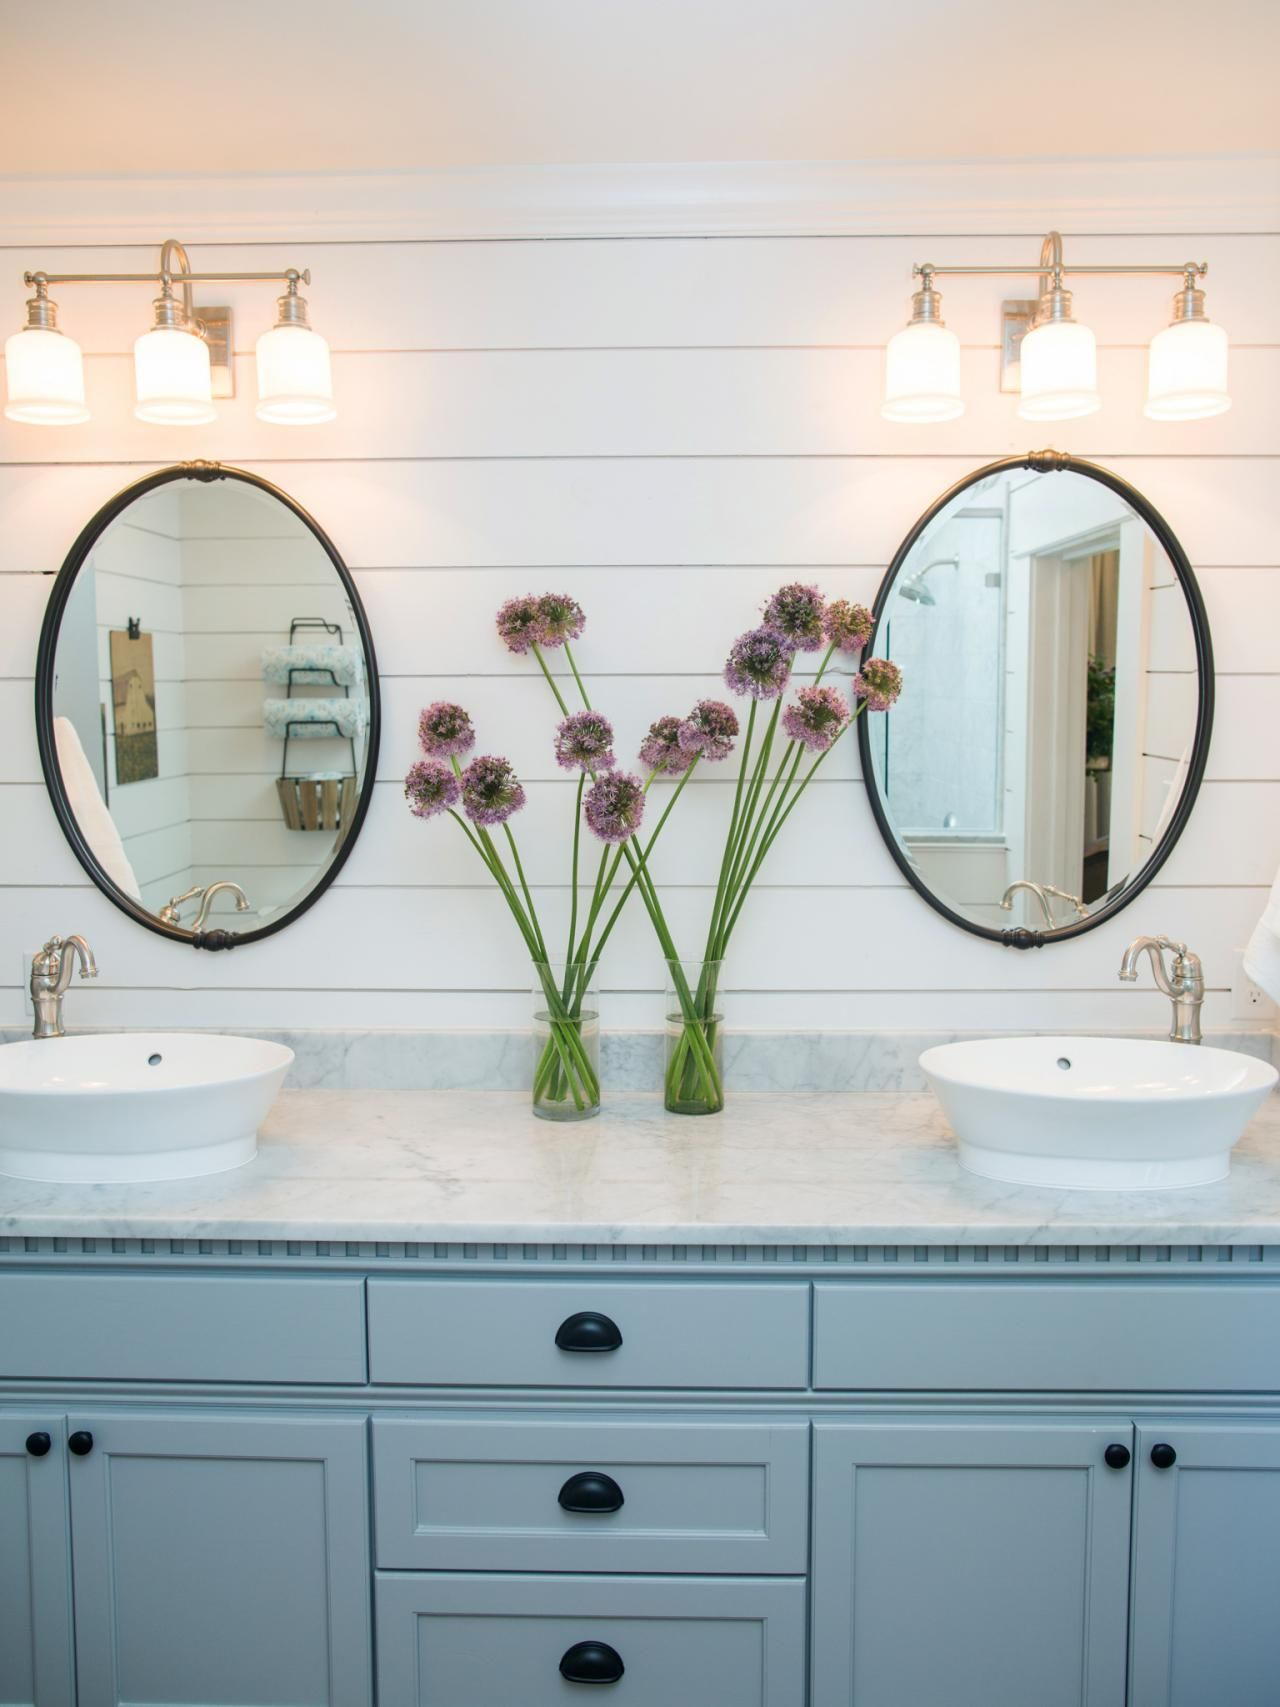 5 things every 'fixer upper'-inspired farmhouse bathroom needs